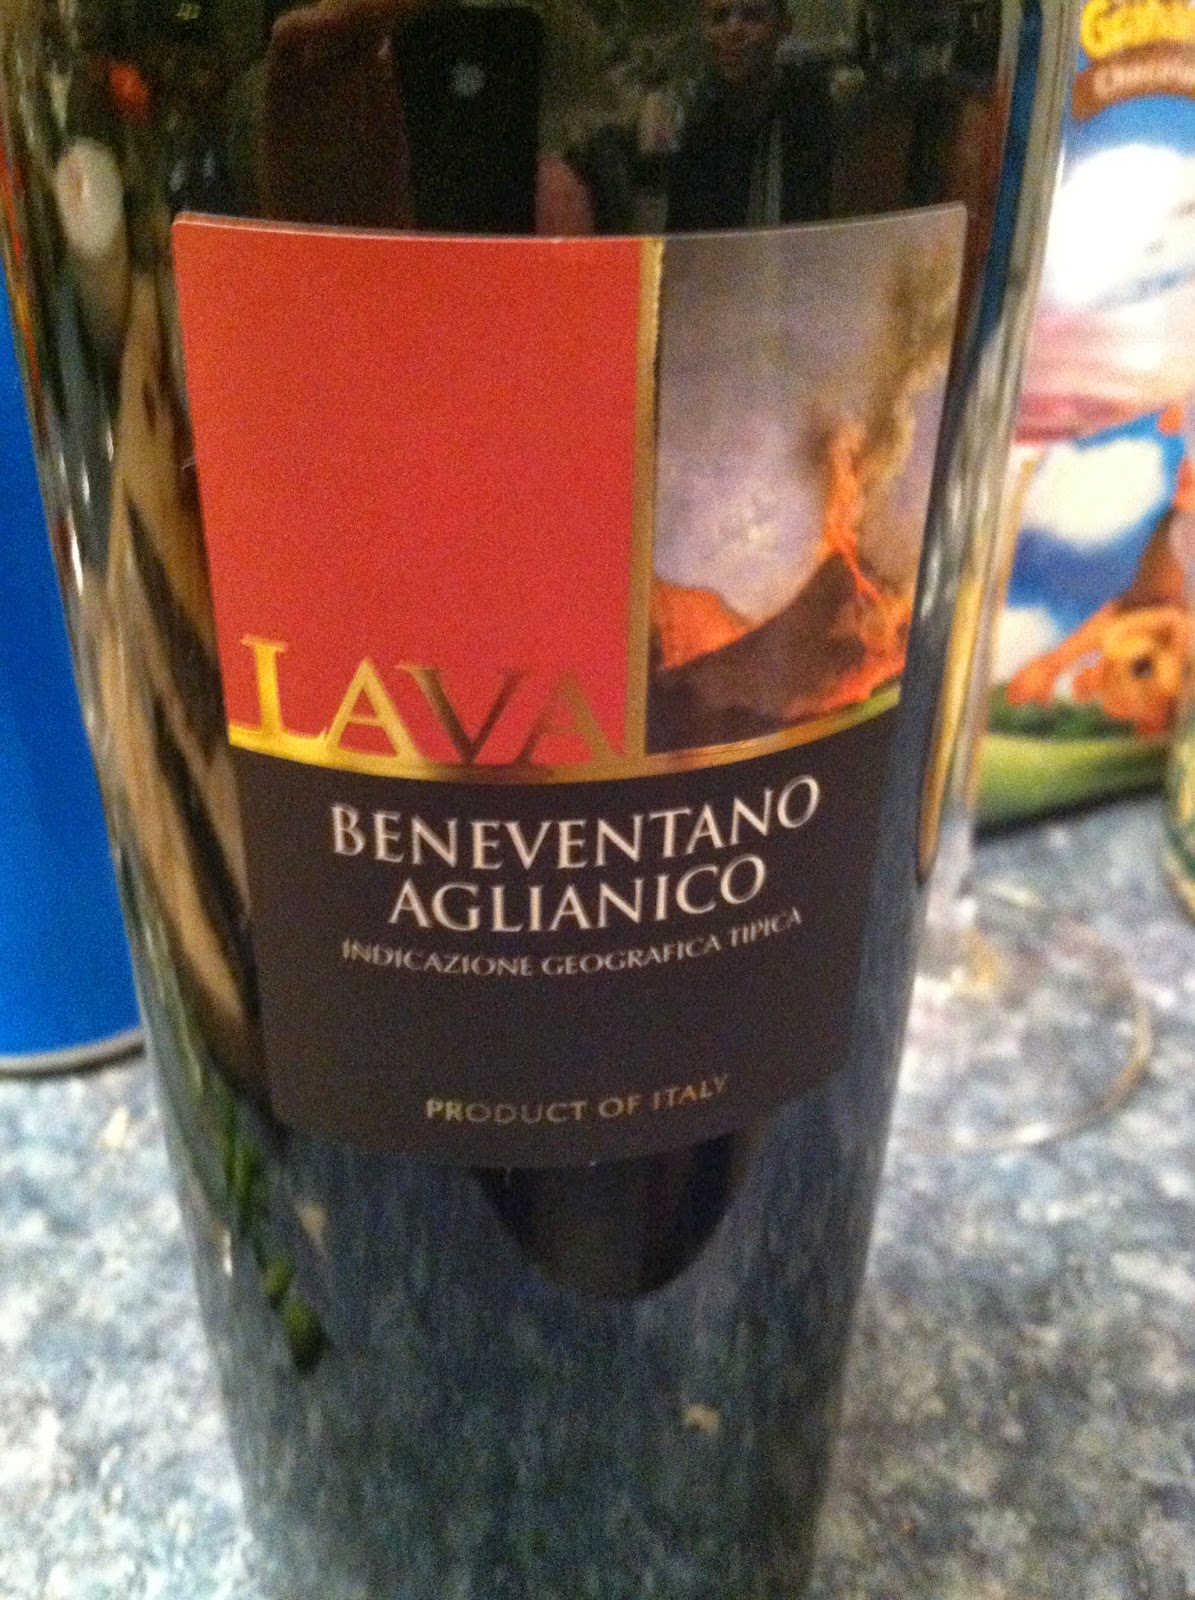 Lava Beneventano Aglianico. A Cooking Chat everyday #wine favorite!